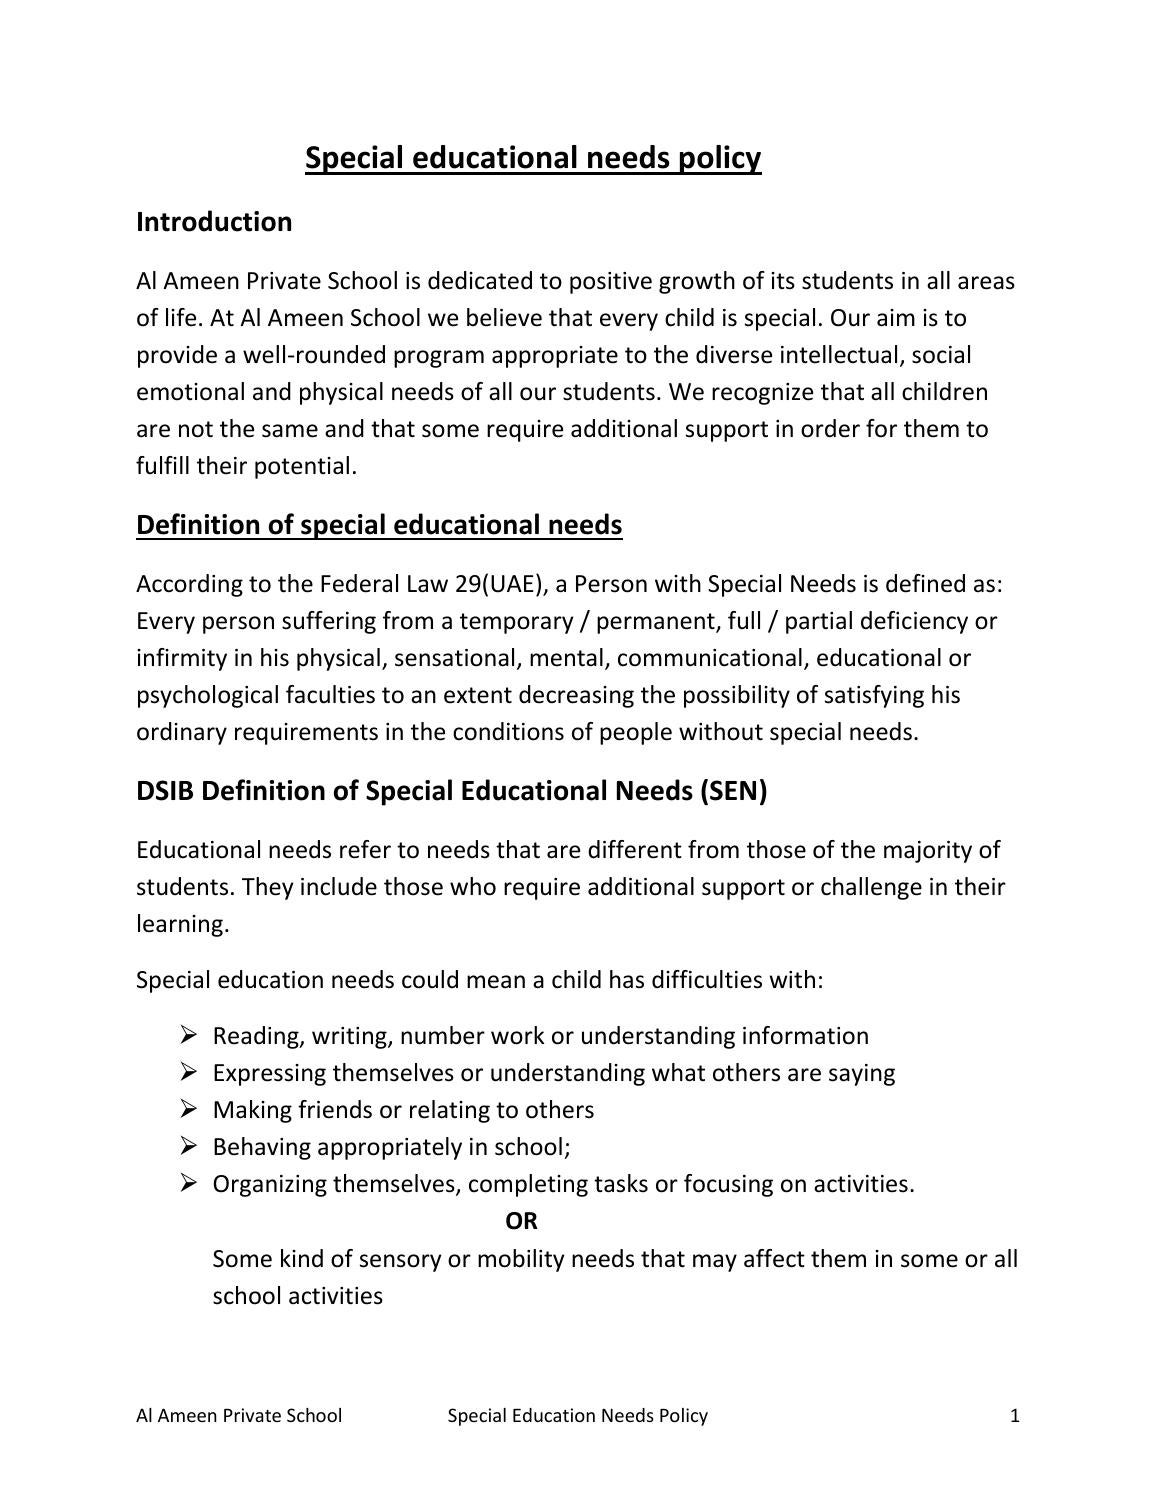 special educational needs policy by al ameen school - issuu